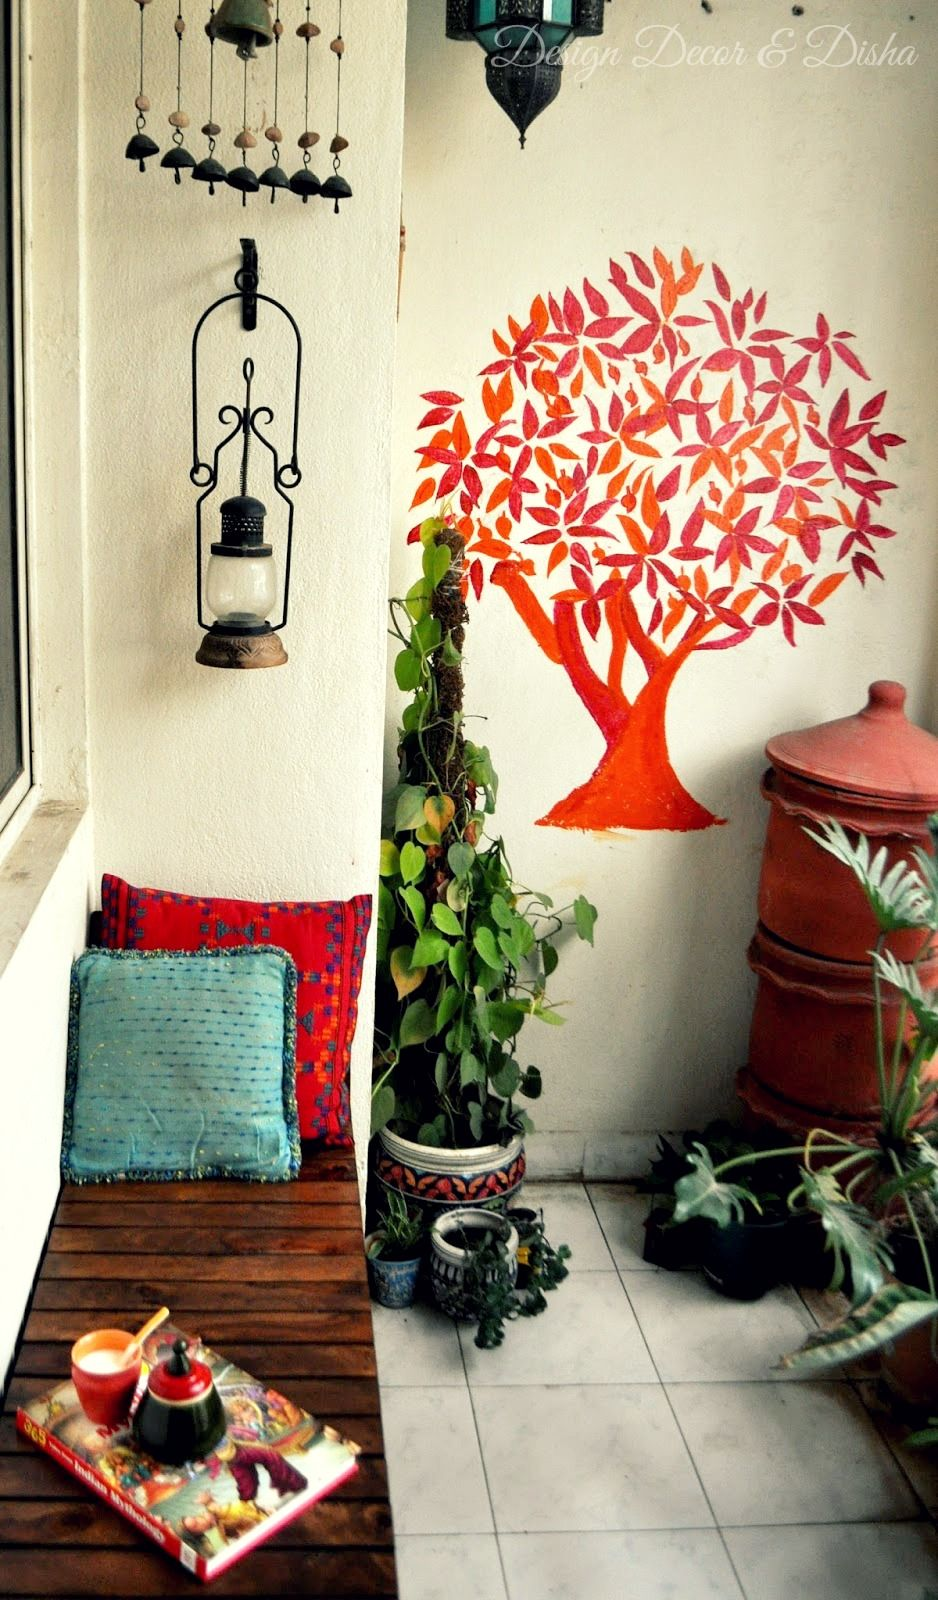 Home Design Ideas Decorating Gardening: Apartment Balcony Decorating